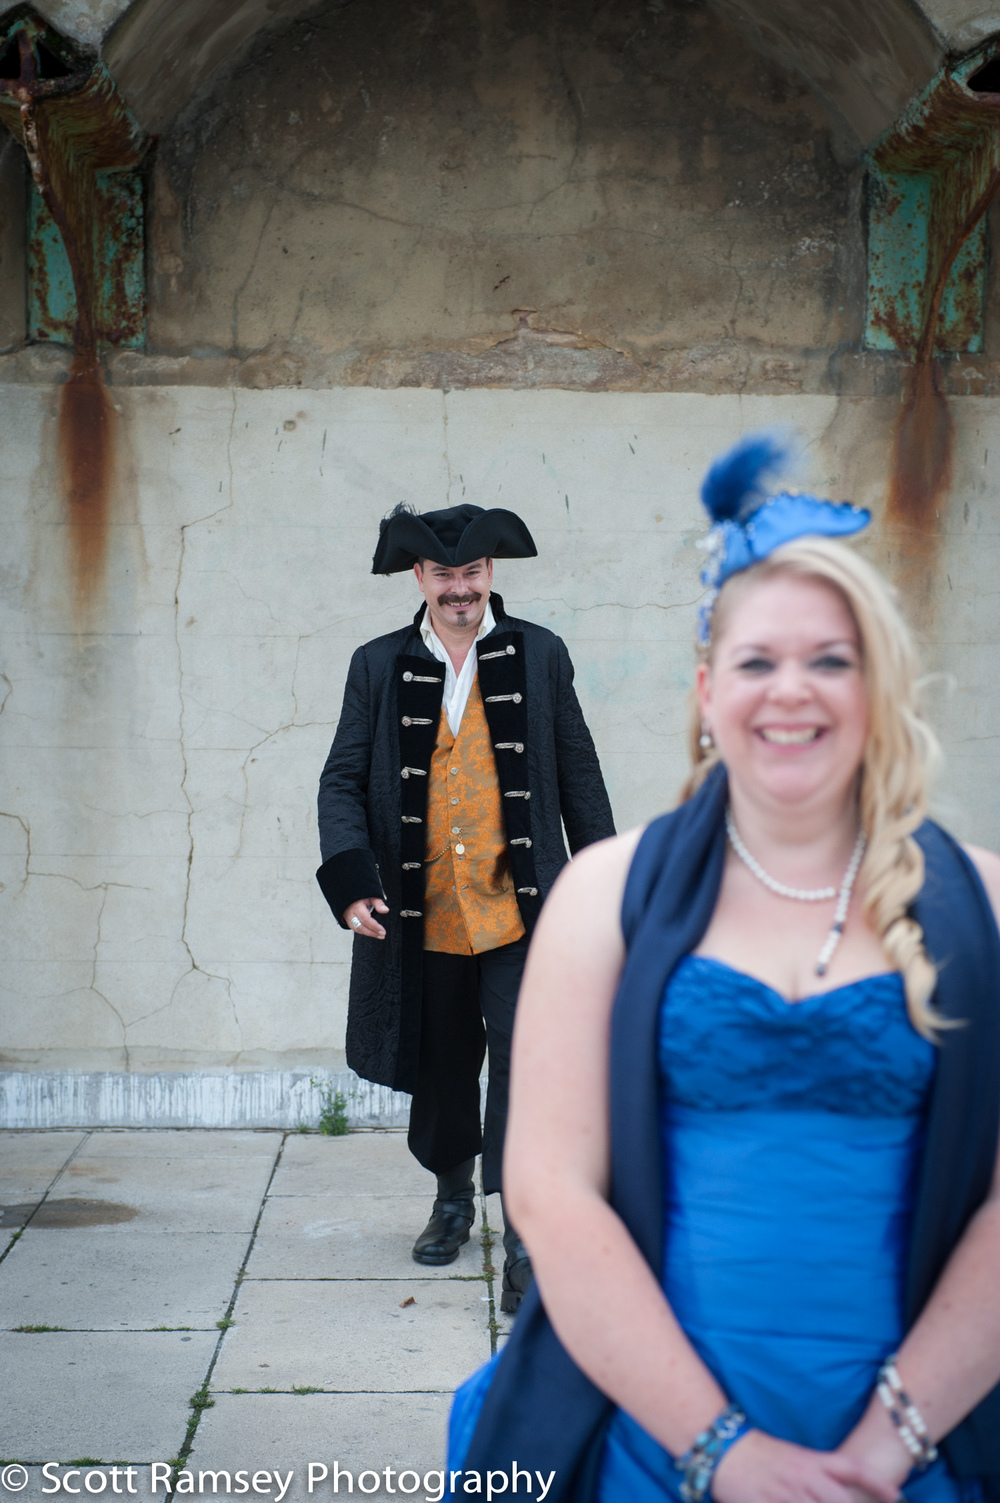 Brighton-Wedding-Photography-Pirate-Theme-Laughing-Groom-140913-